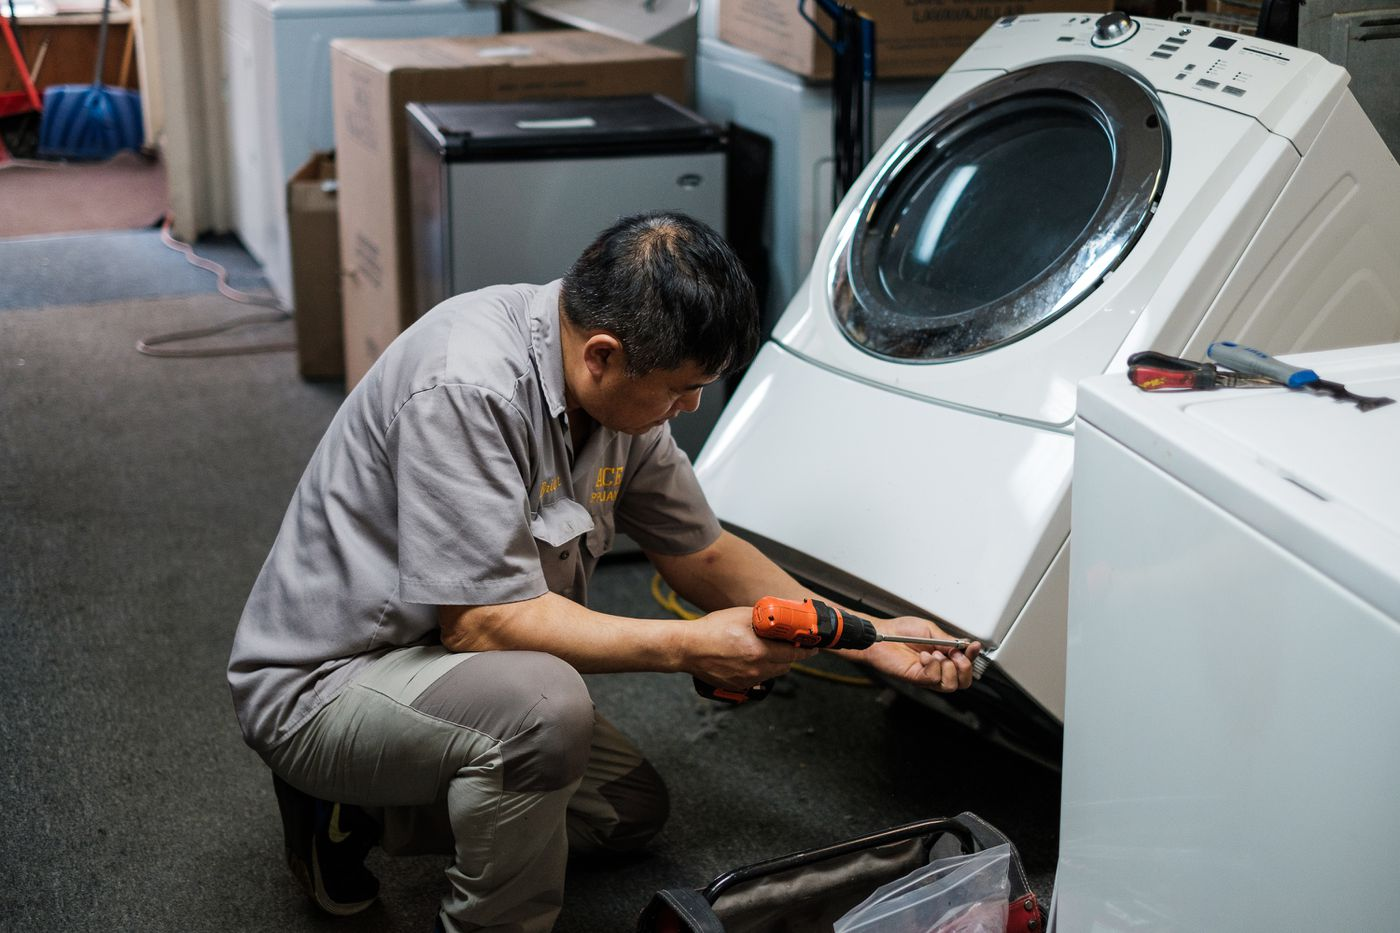 Chun B. Park starts to remove the exterior of a dryer unit so that he can start replacing faulty parts. Park spends the first few hours of his work day repairing things in his shop before making house calls. (Young Kim / Alaska Dispatch News)